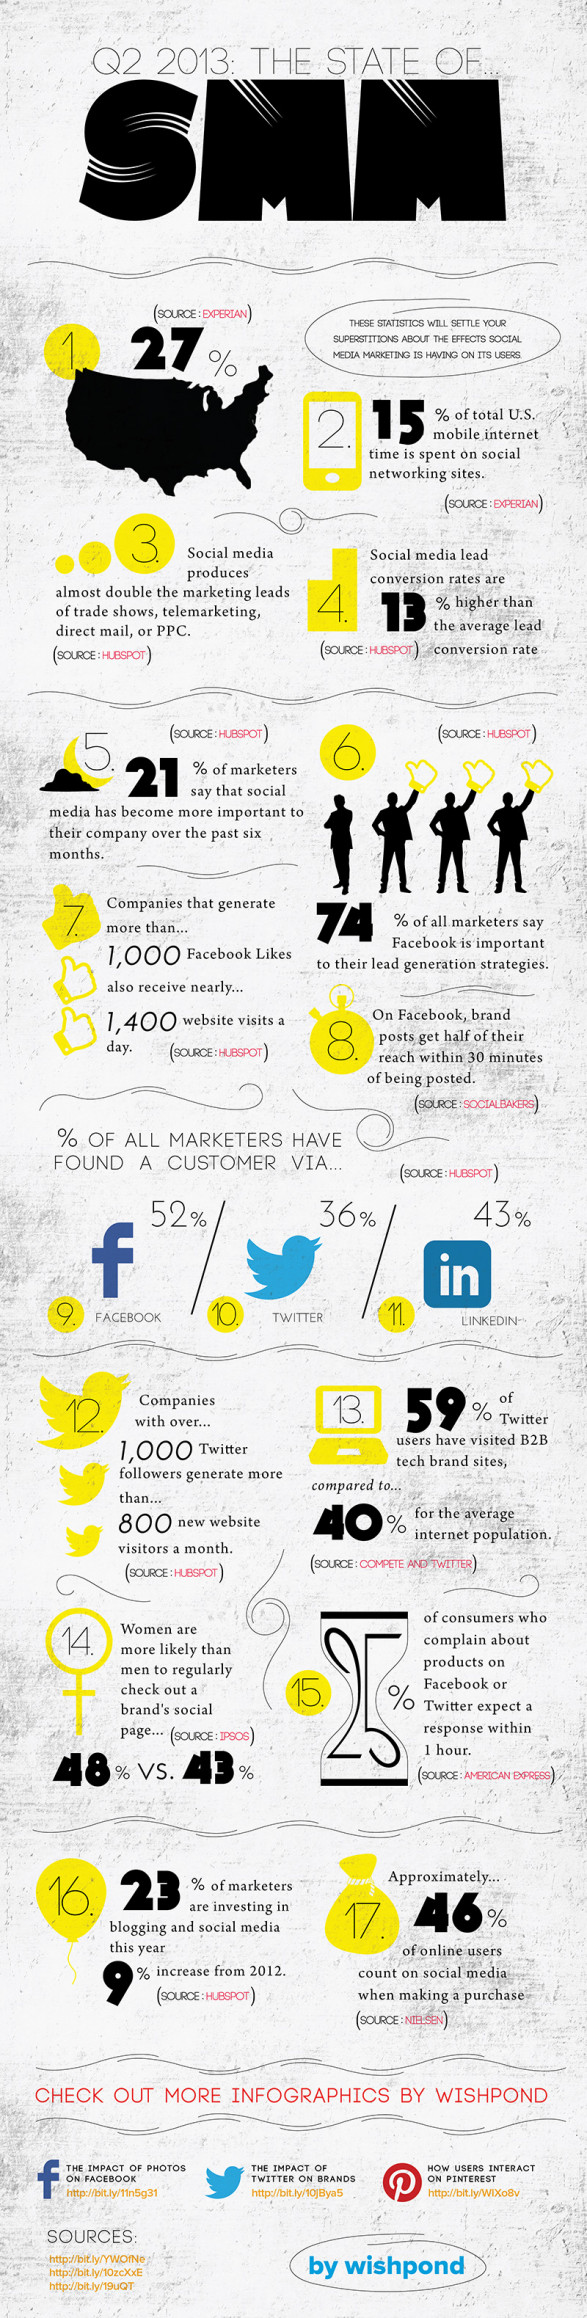 Q2 2013: The State of Social Media Marketing